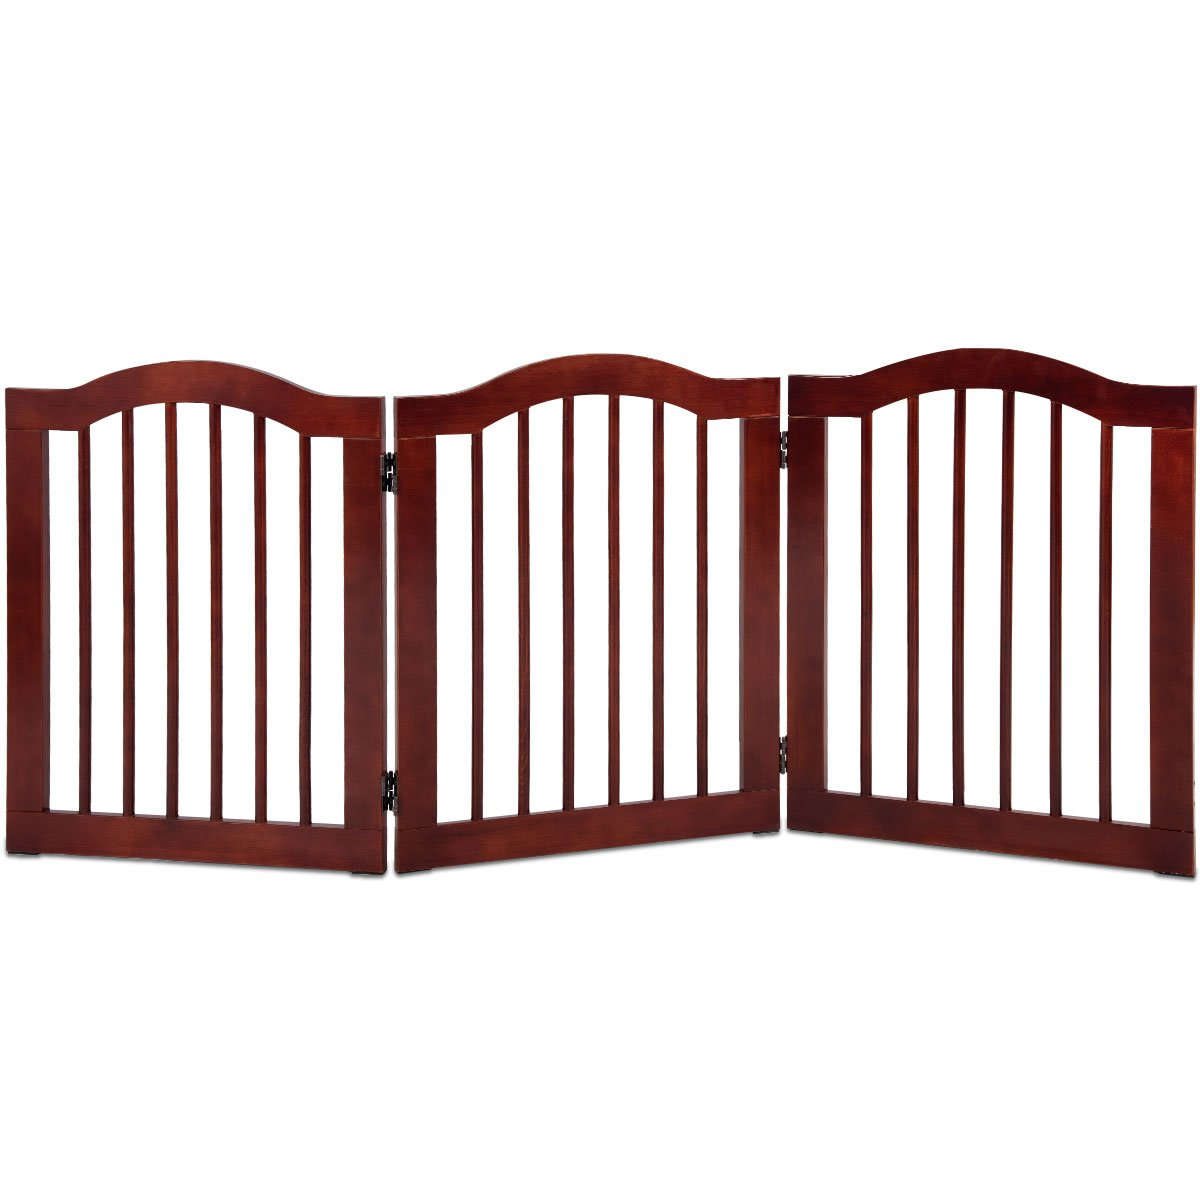 Giantex Wood Dog Gate Pet Fence Barrier Configurable Folding Freestanding Doorway Fence Doggie Puppy Fencing Enclosure System Indoor Safety Gate for Dogs (3 Panel, 24'')